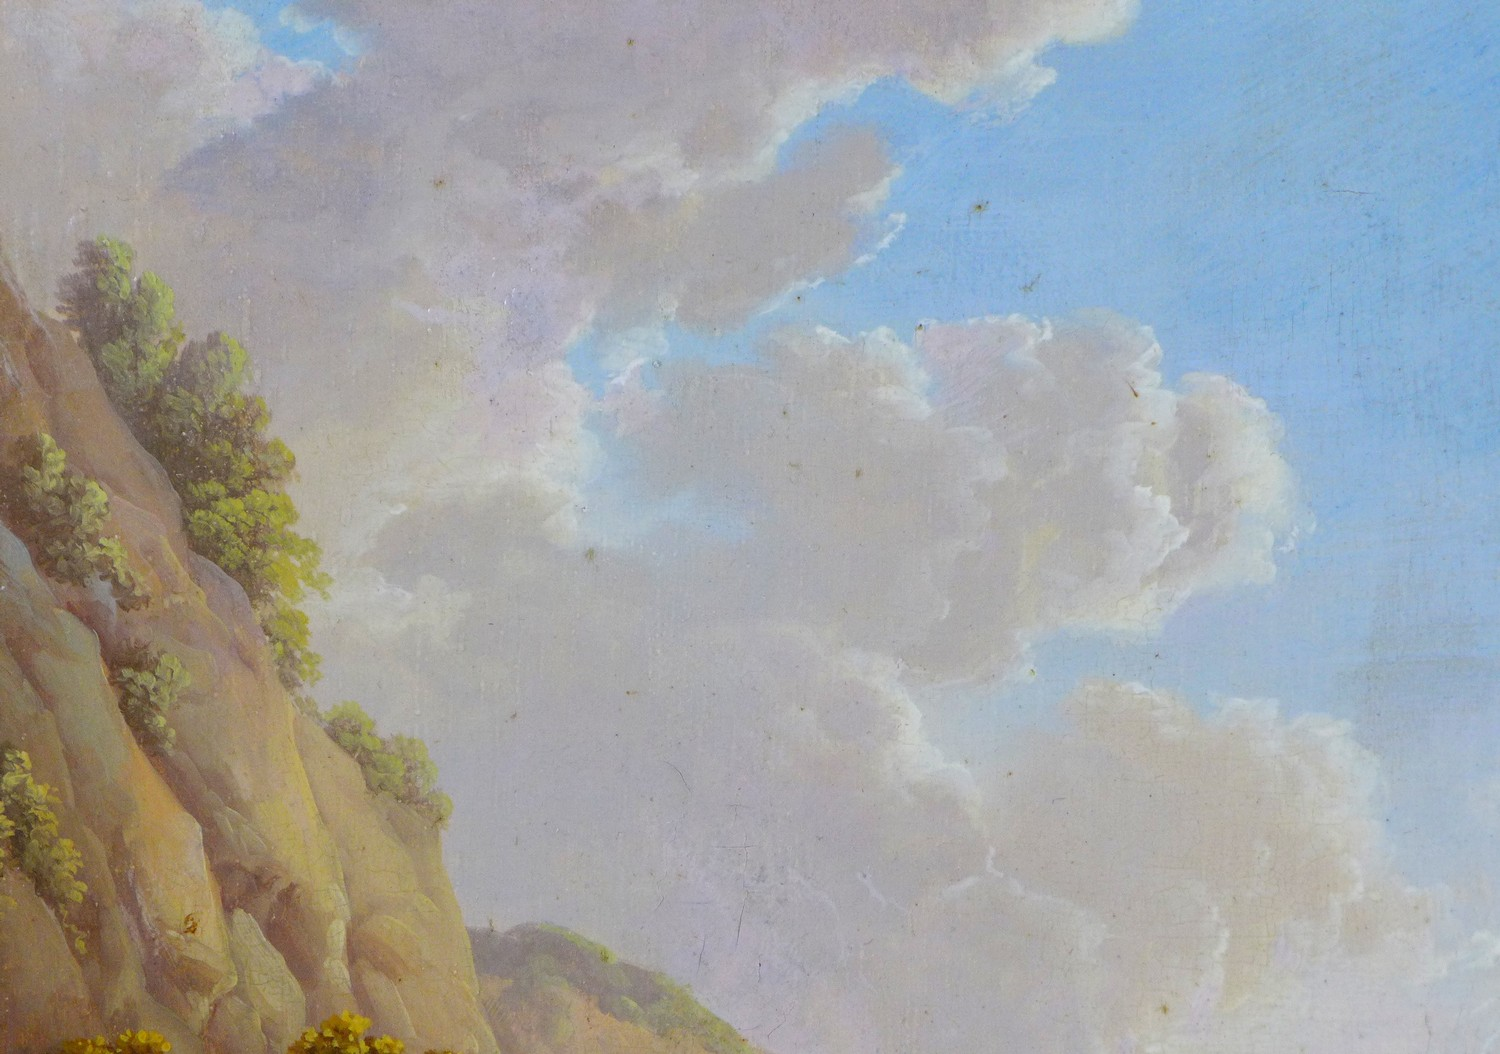 Attributed to Charles Towne (British, 1763-1840): 'Landscape & Cattle', signed 'Town' to a rock in - Image 4 of 11